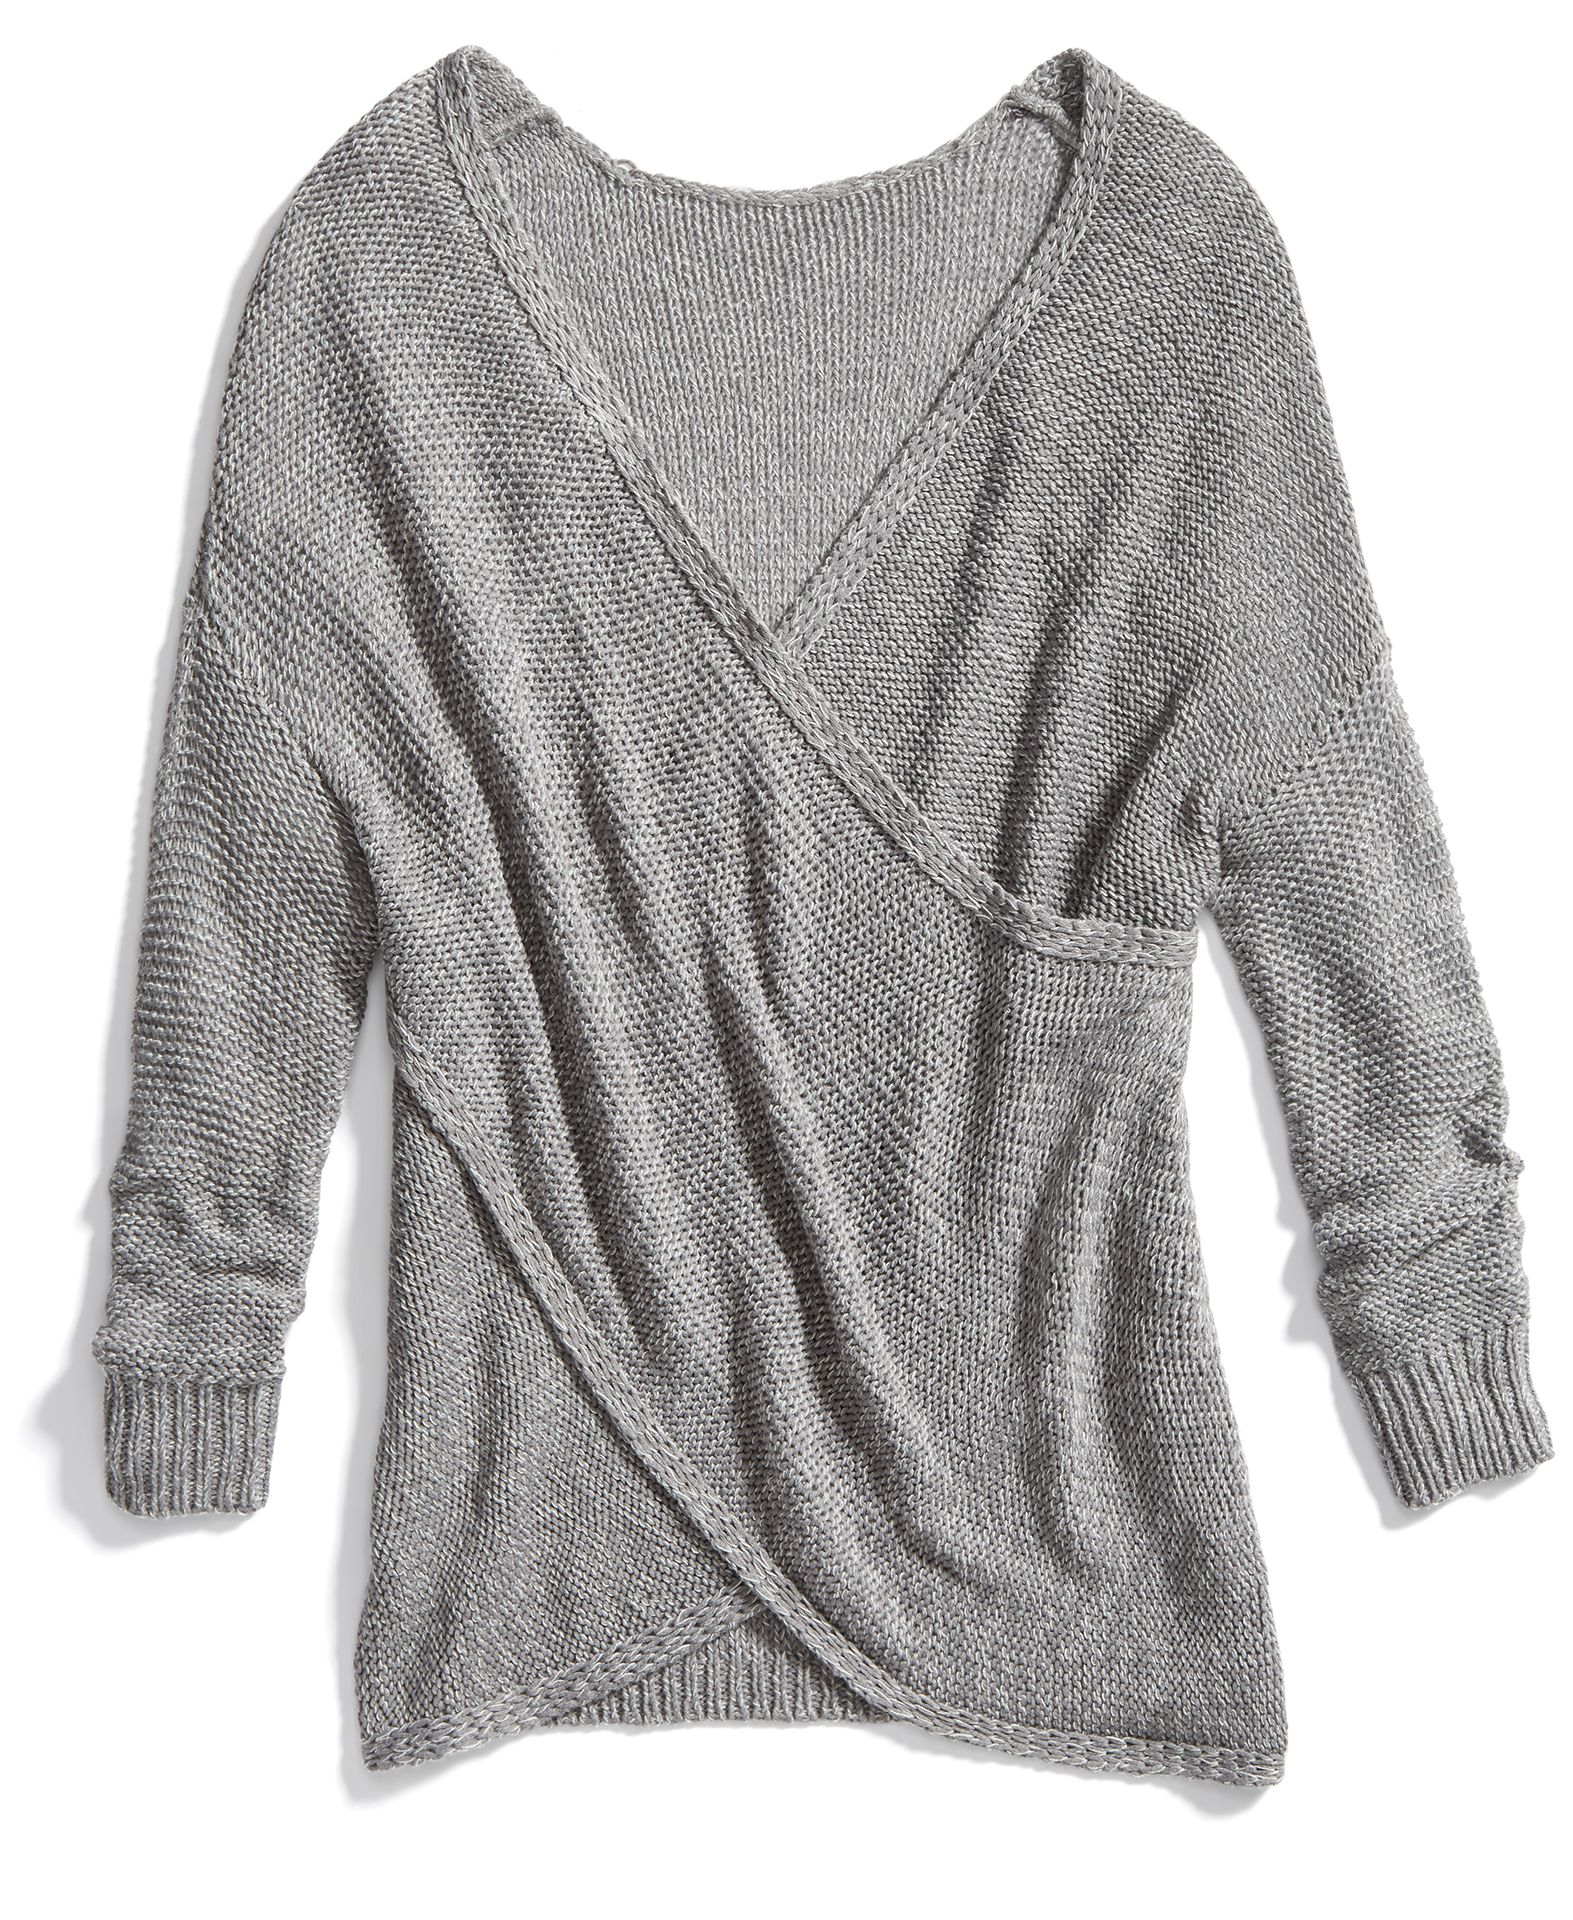 52add01406f51c Stitch Fix Winter Essentials: Try a cross-front sweater to switch up your  sweater game.